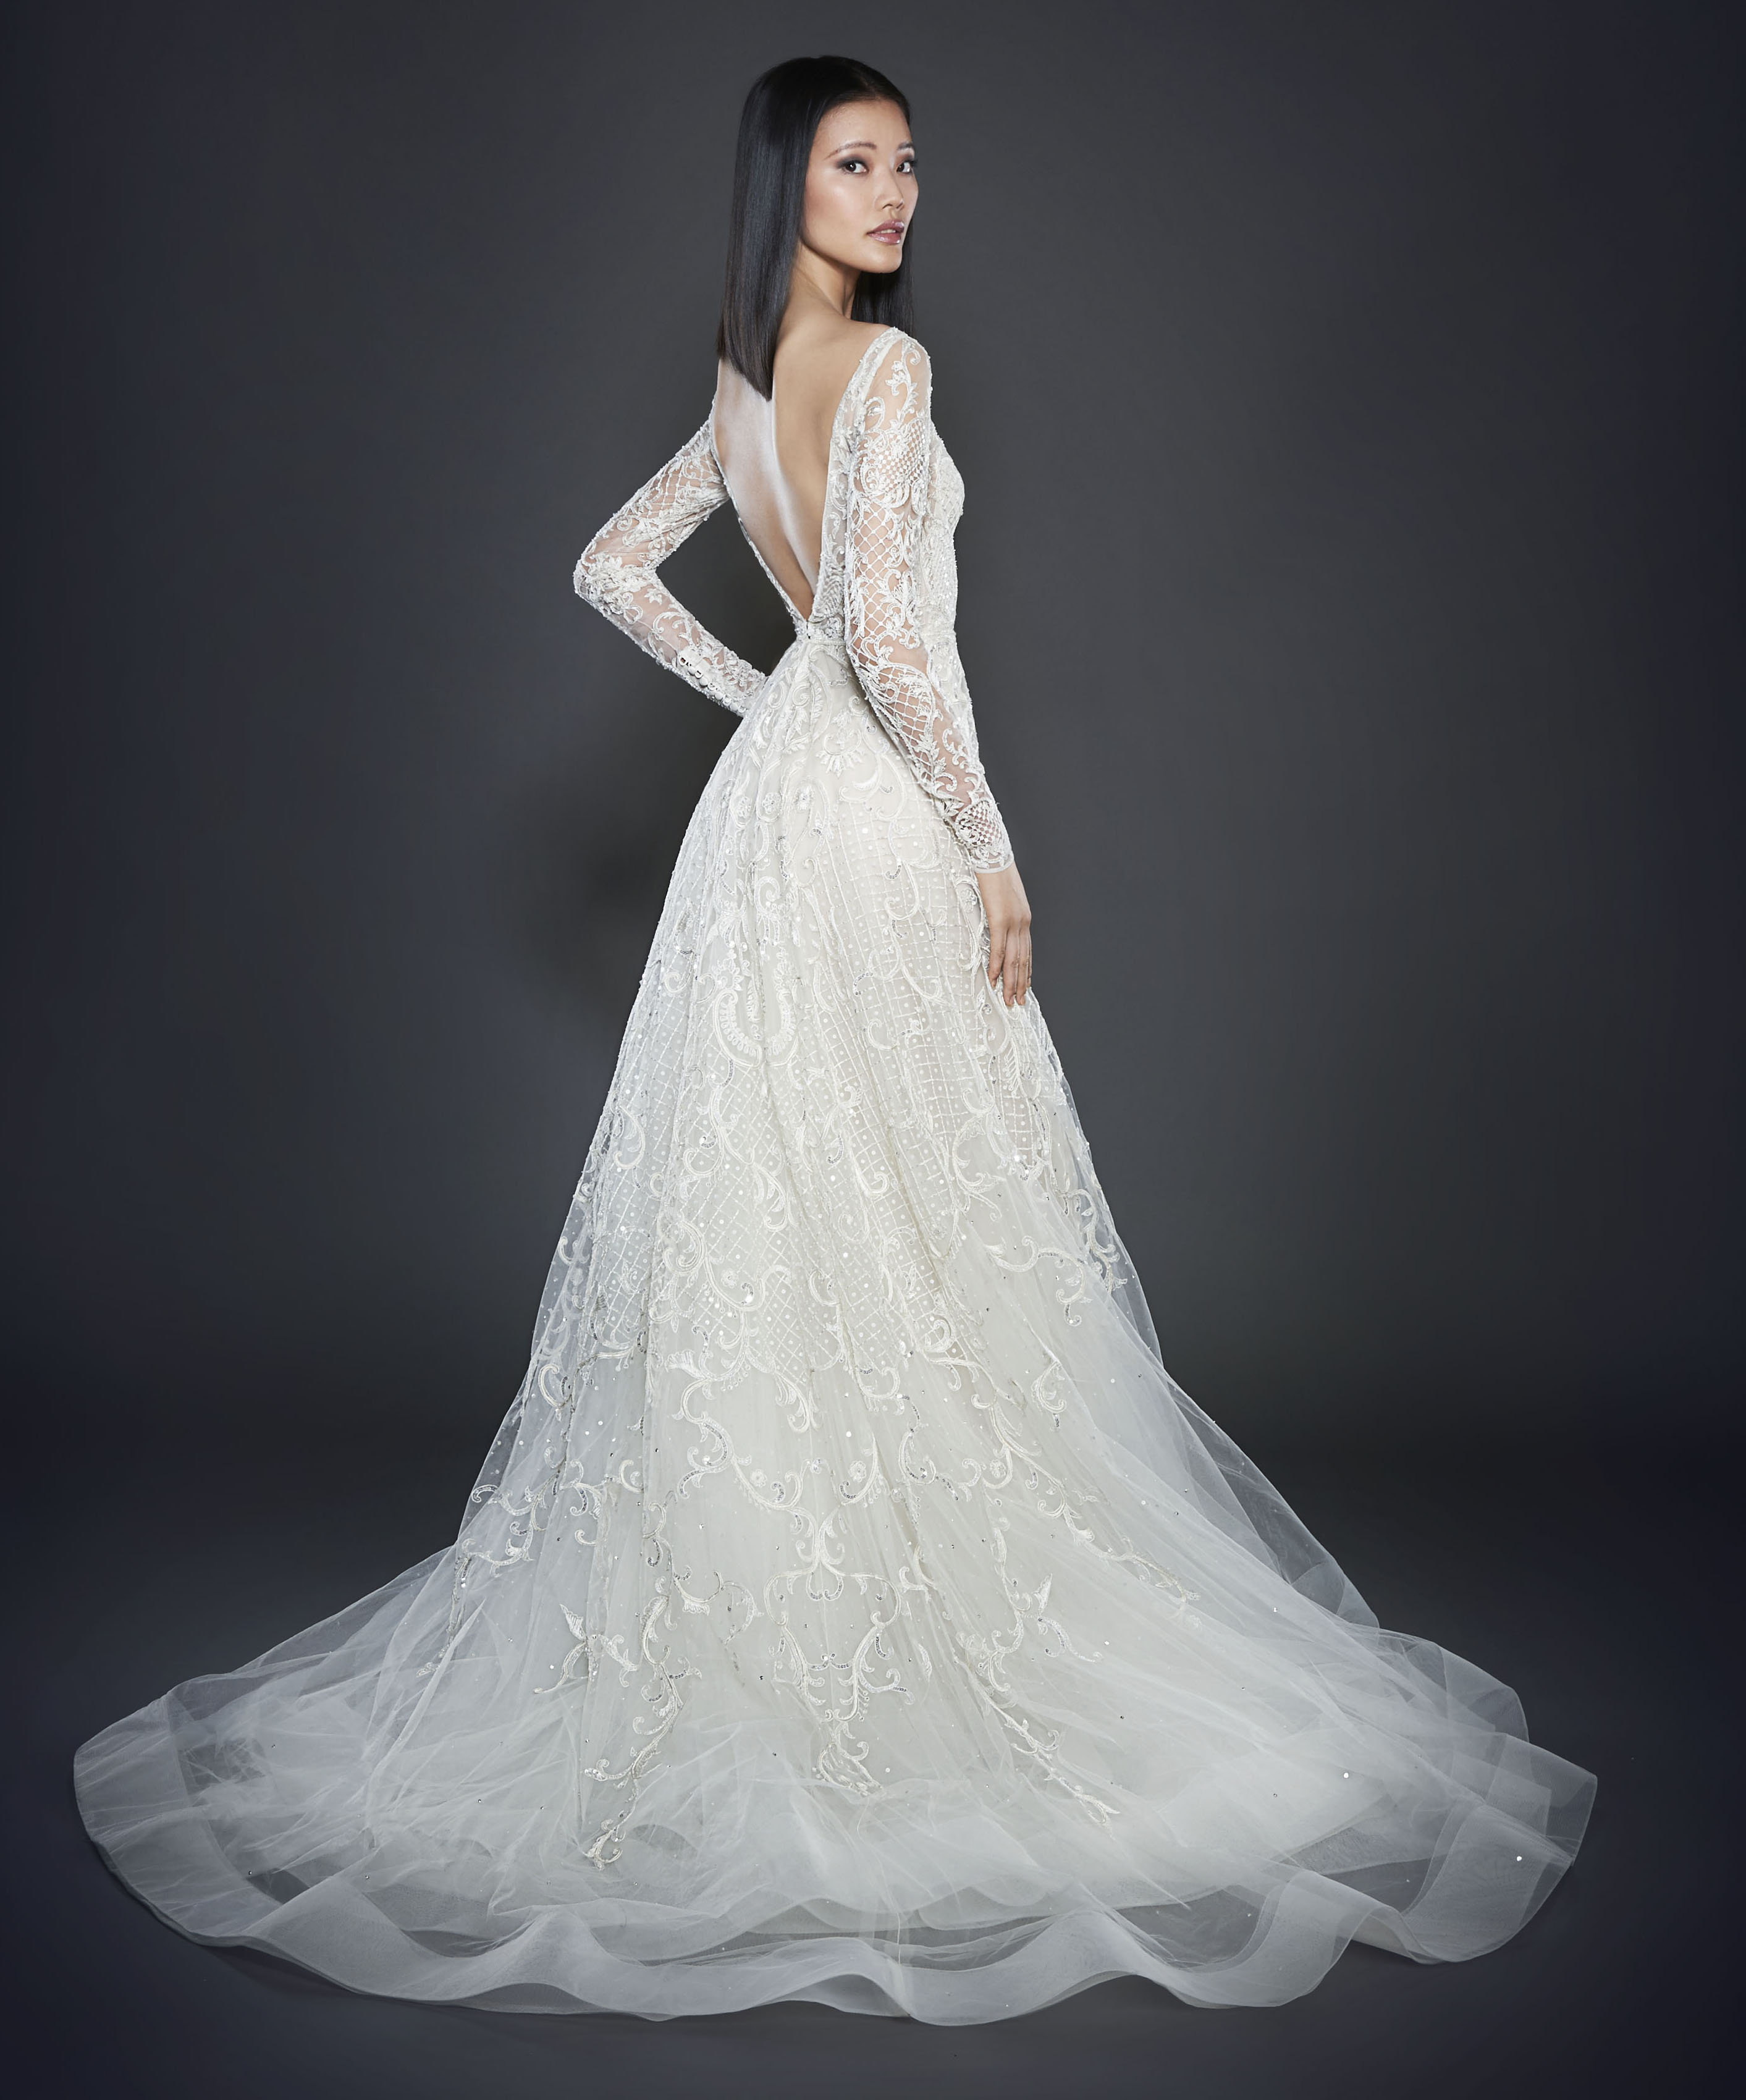 Bridal Gowns and Wedding Dresses by JLM Couture - Style 3709